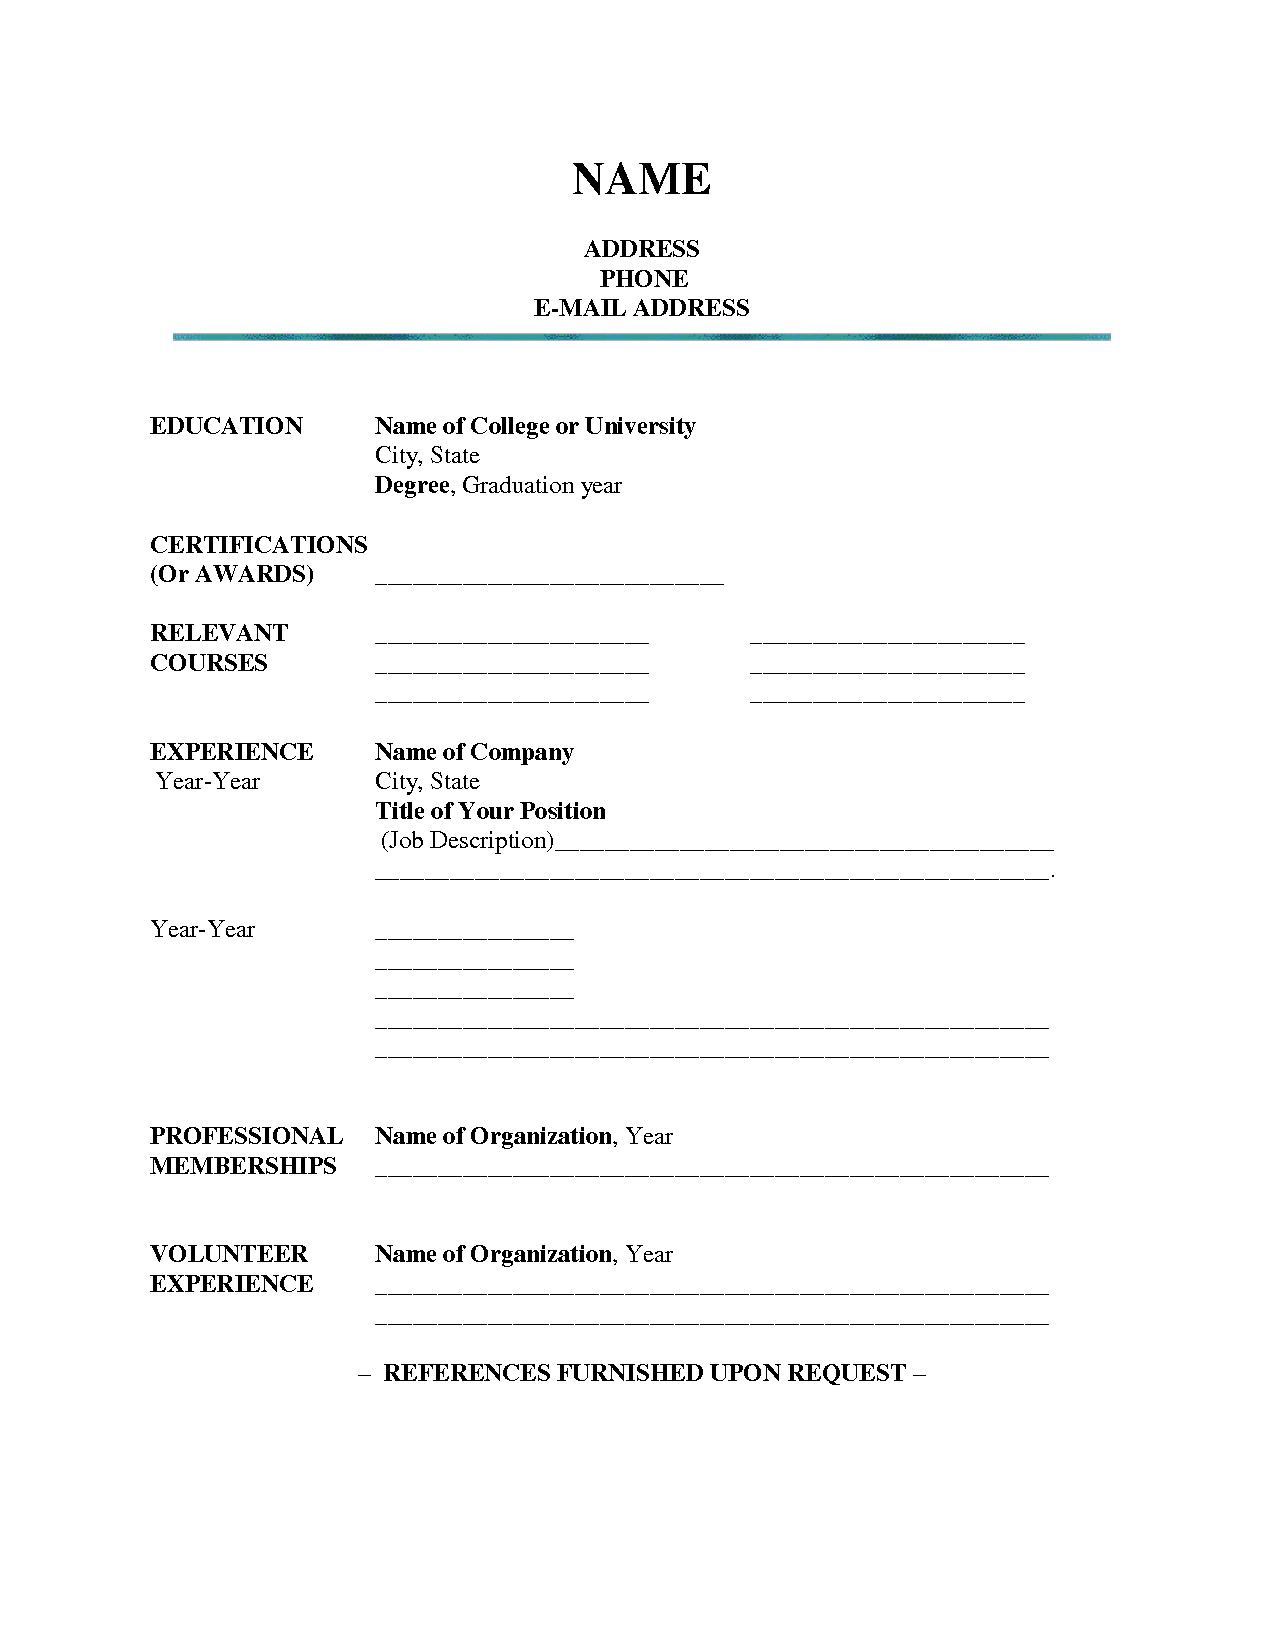 blank resume template word - Blank Resume Template Word